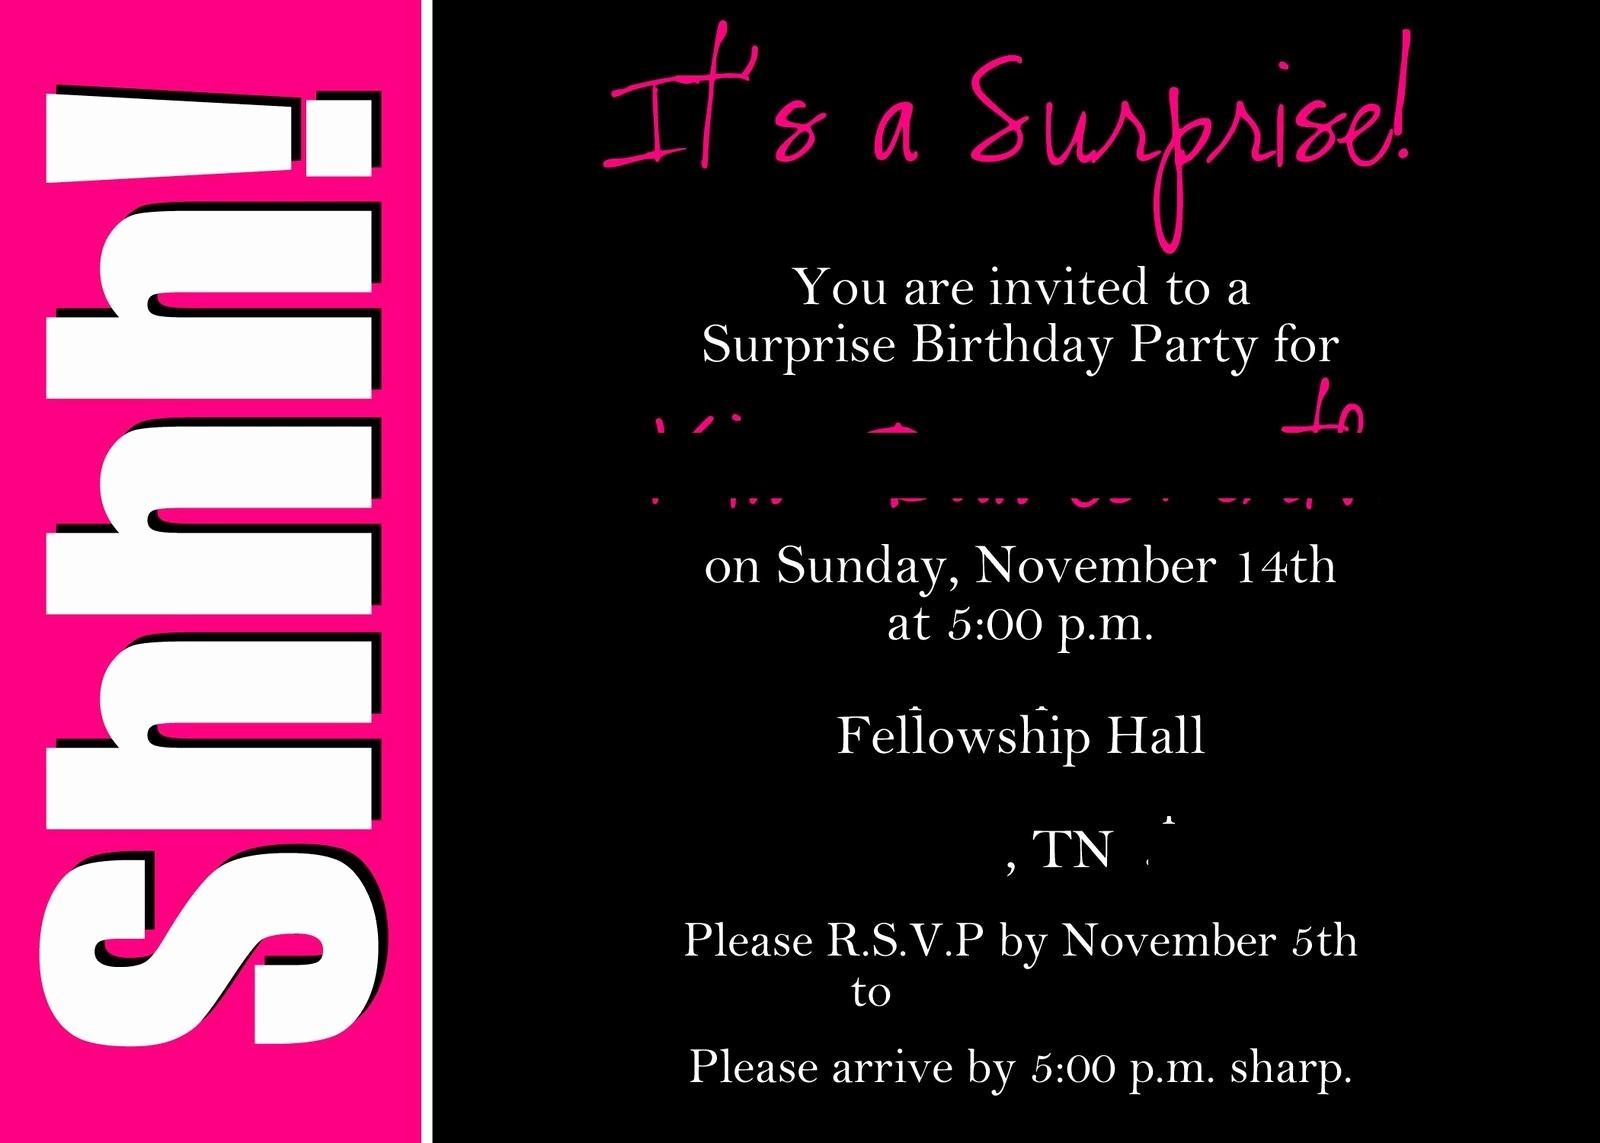 Surprise Birthday Party Invitation Template Lovely Surprise 50th Birthday Invitations Templates